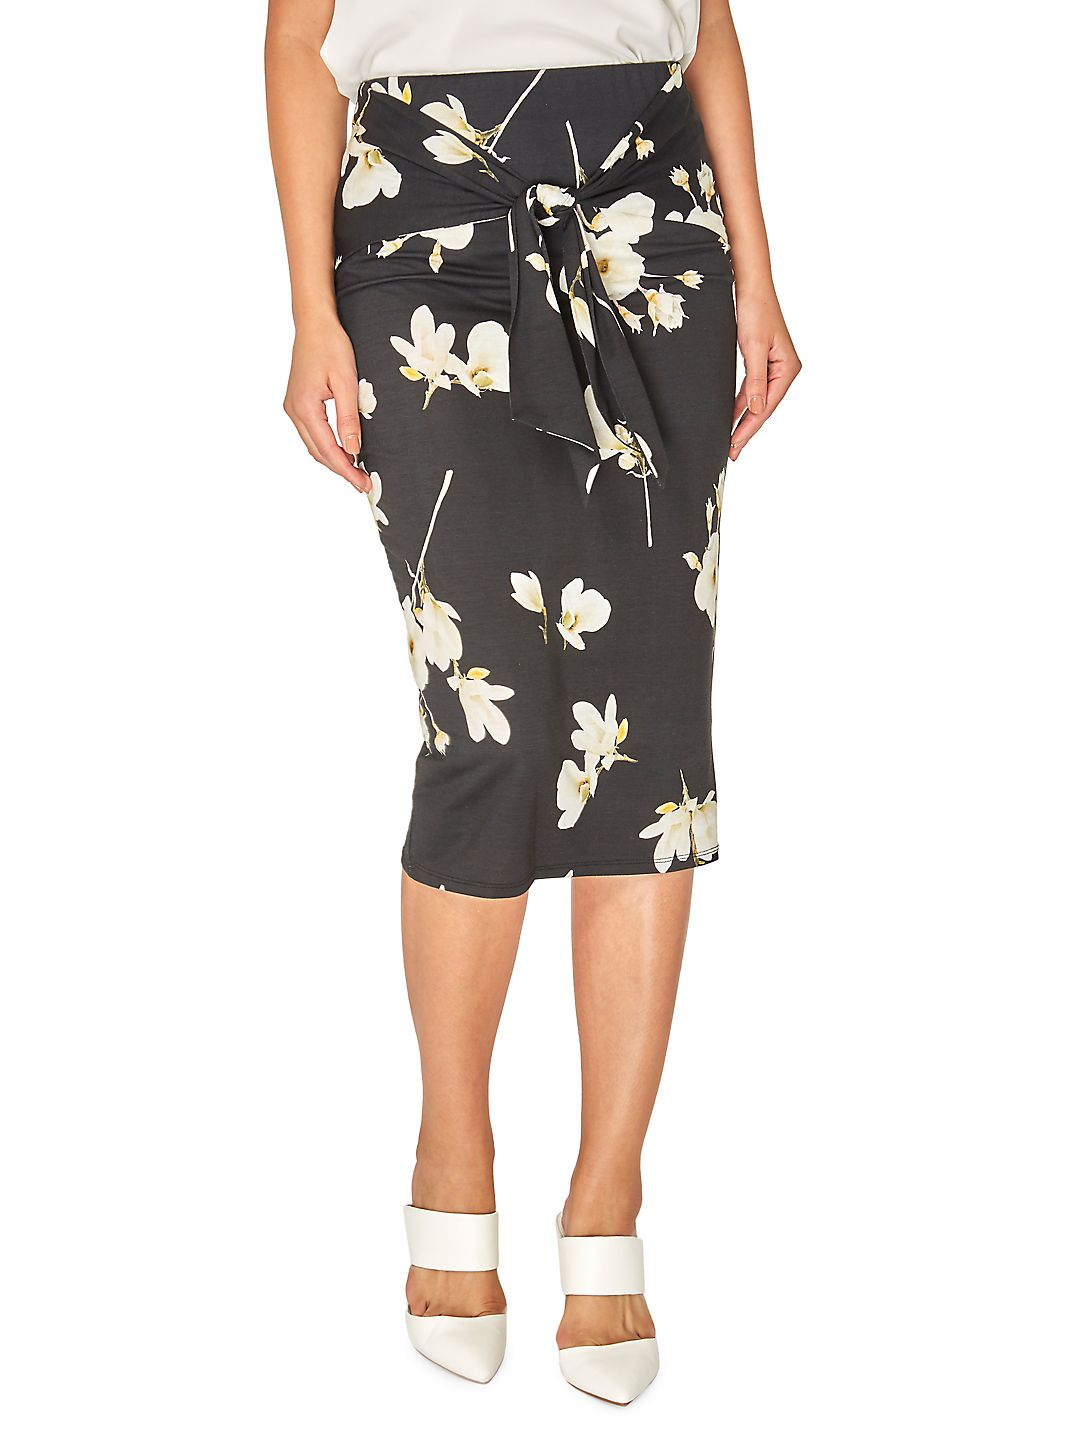 Floral Tie-Front Pencil Skirt